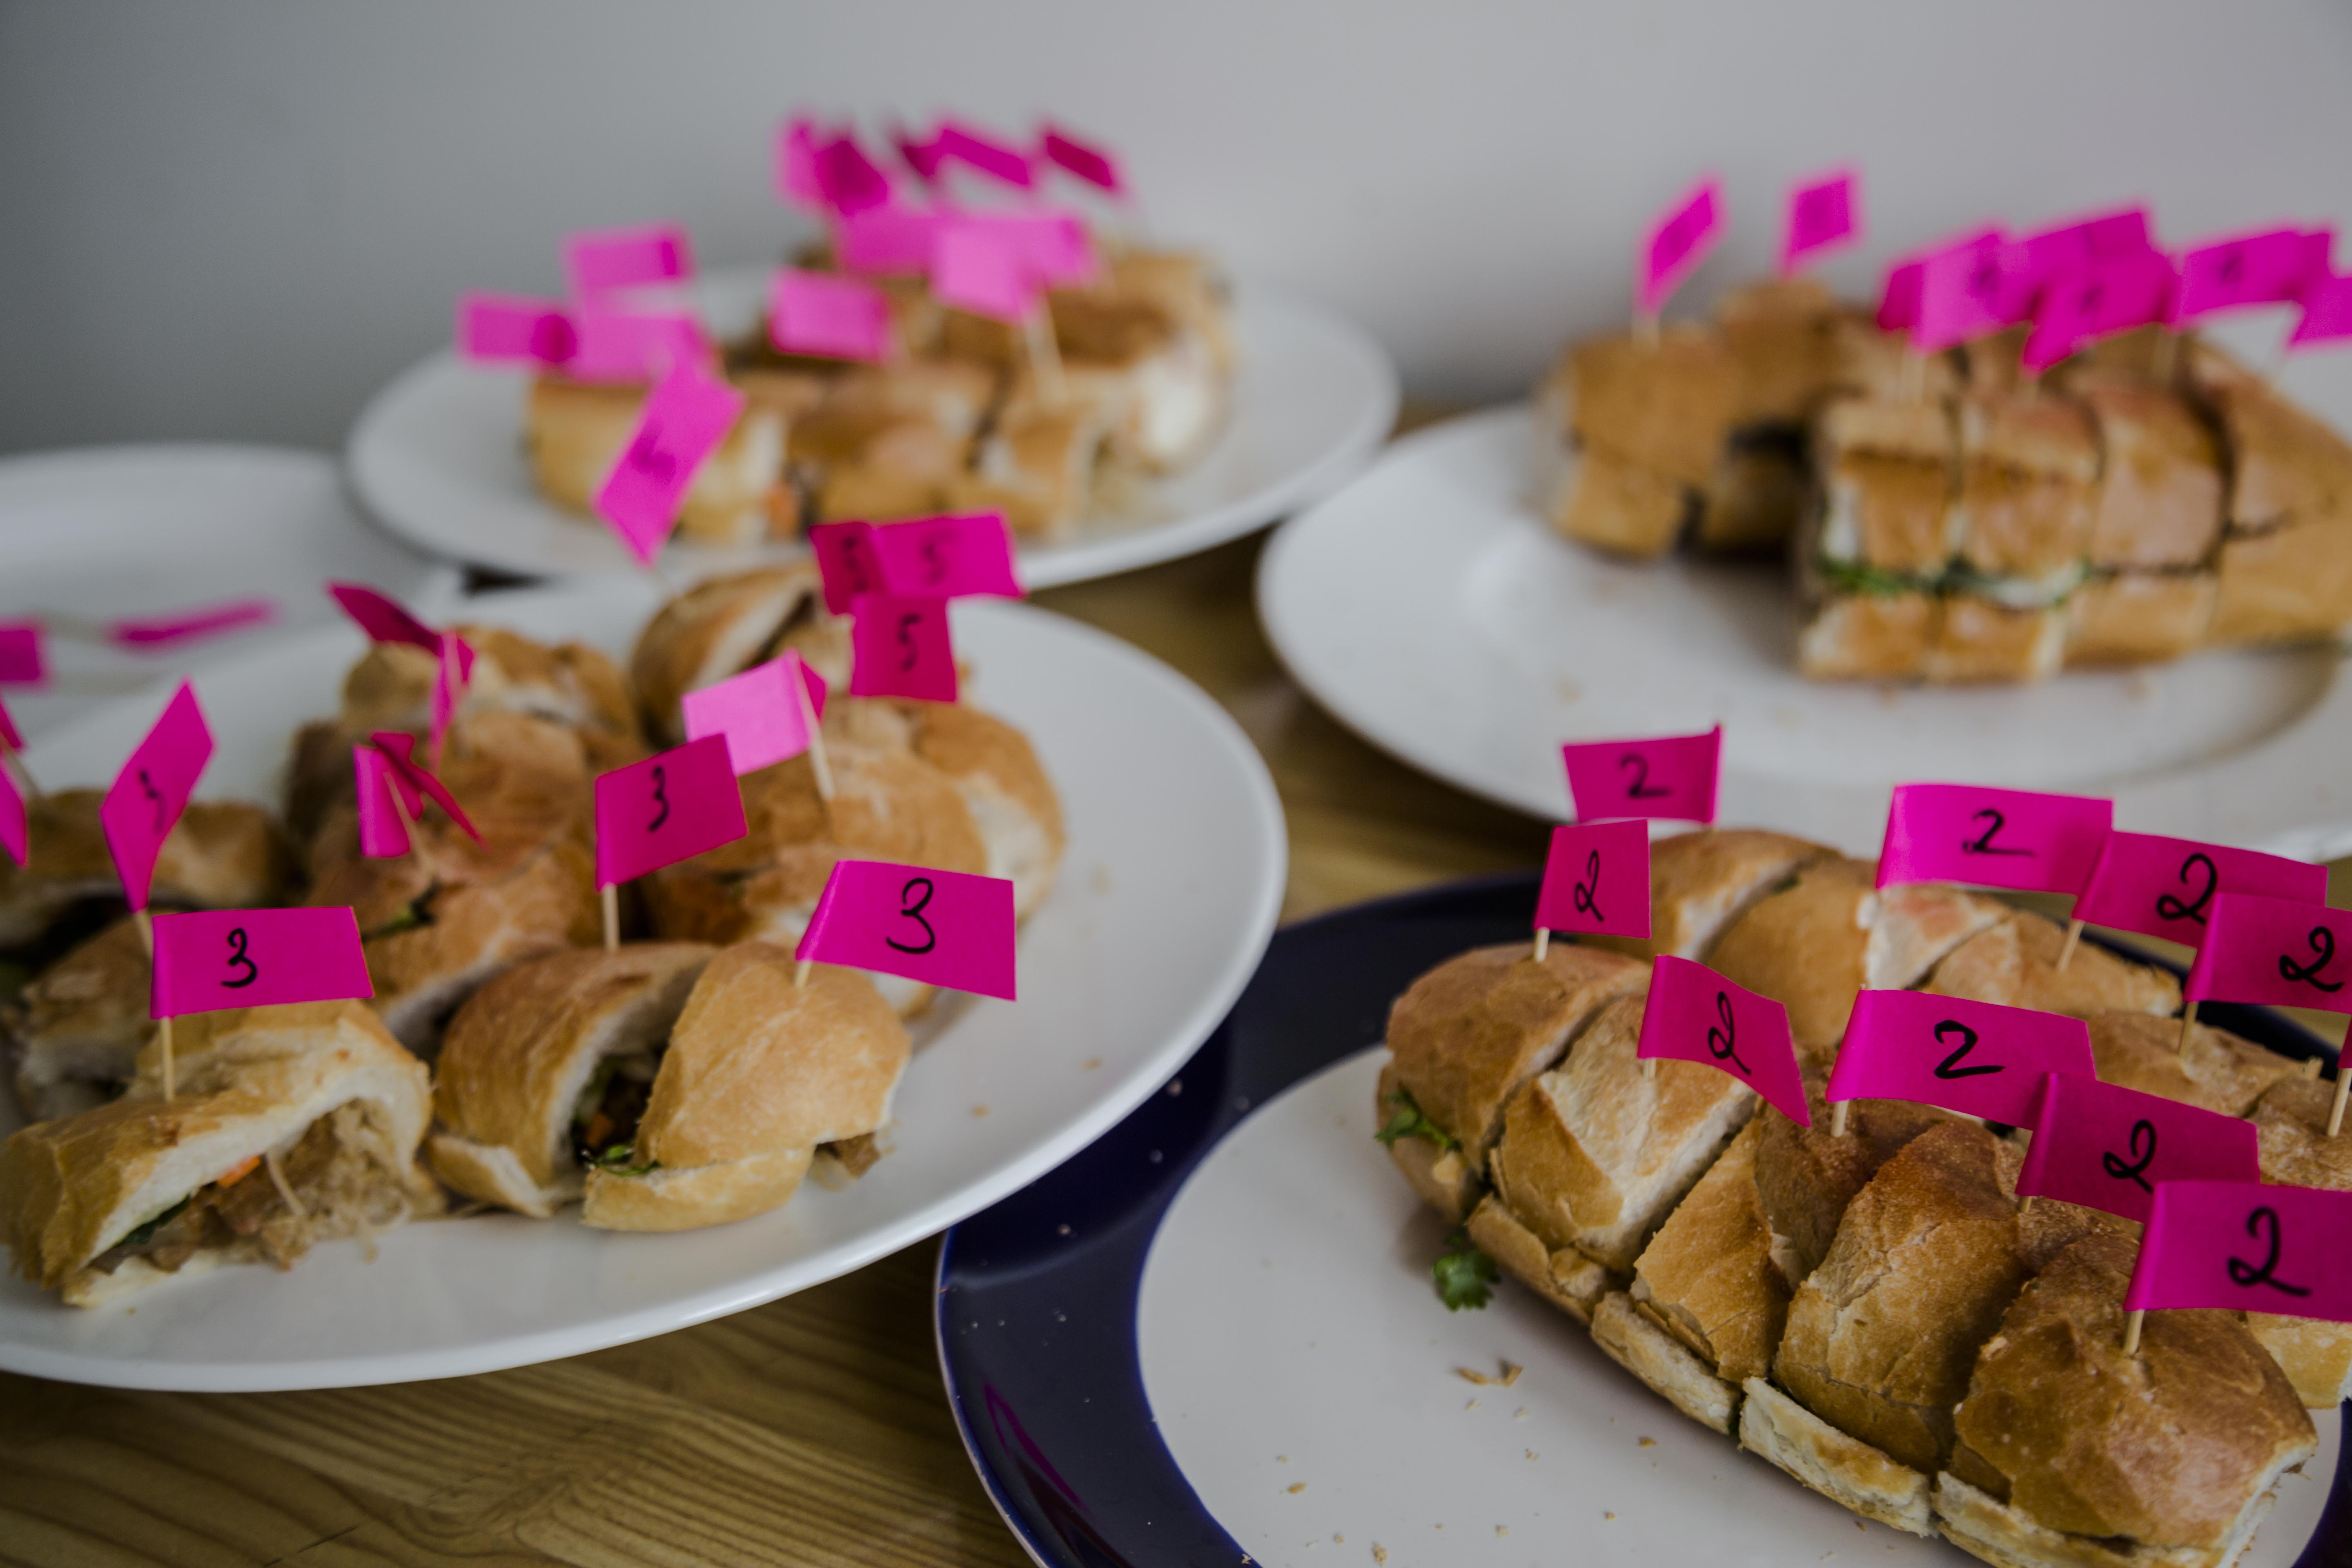 Banh Mi Blind Taste Test at Christina's Headquarters - The Christina's Blog